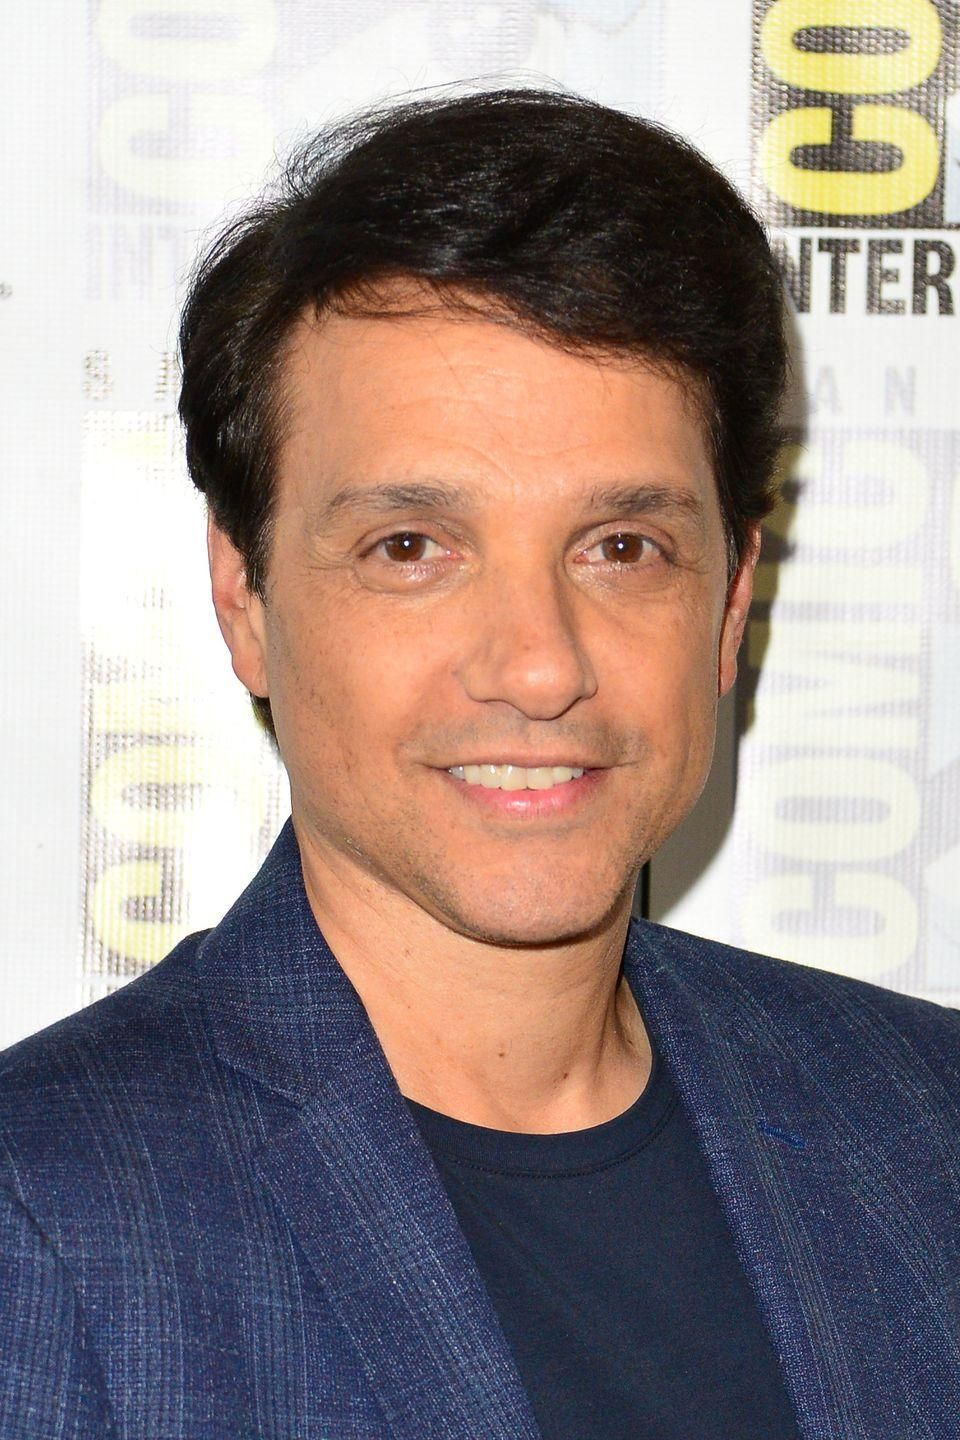 <p>Macchio is currently starring in <em>Cobra Kai,</em> a sequel television series to <em>The Karate Kid. </em>Outside of acting, he came in fourth on <em>Dancing with the Stars. </em></p>